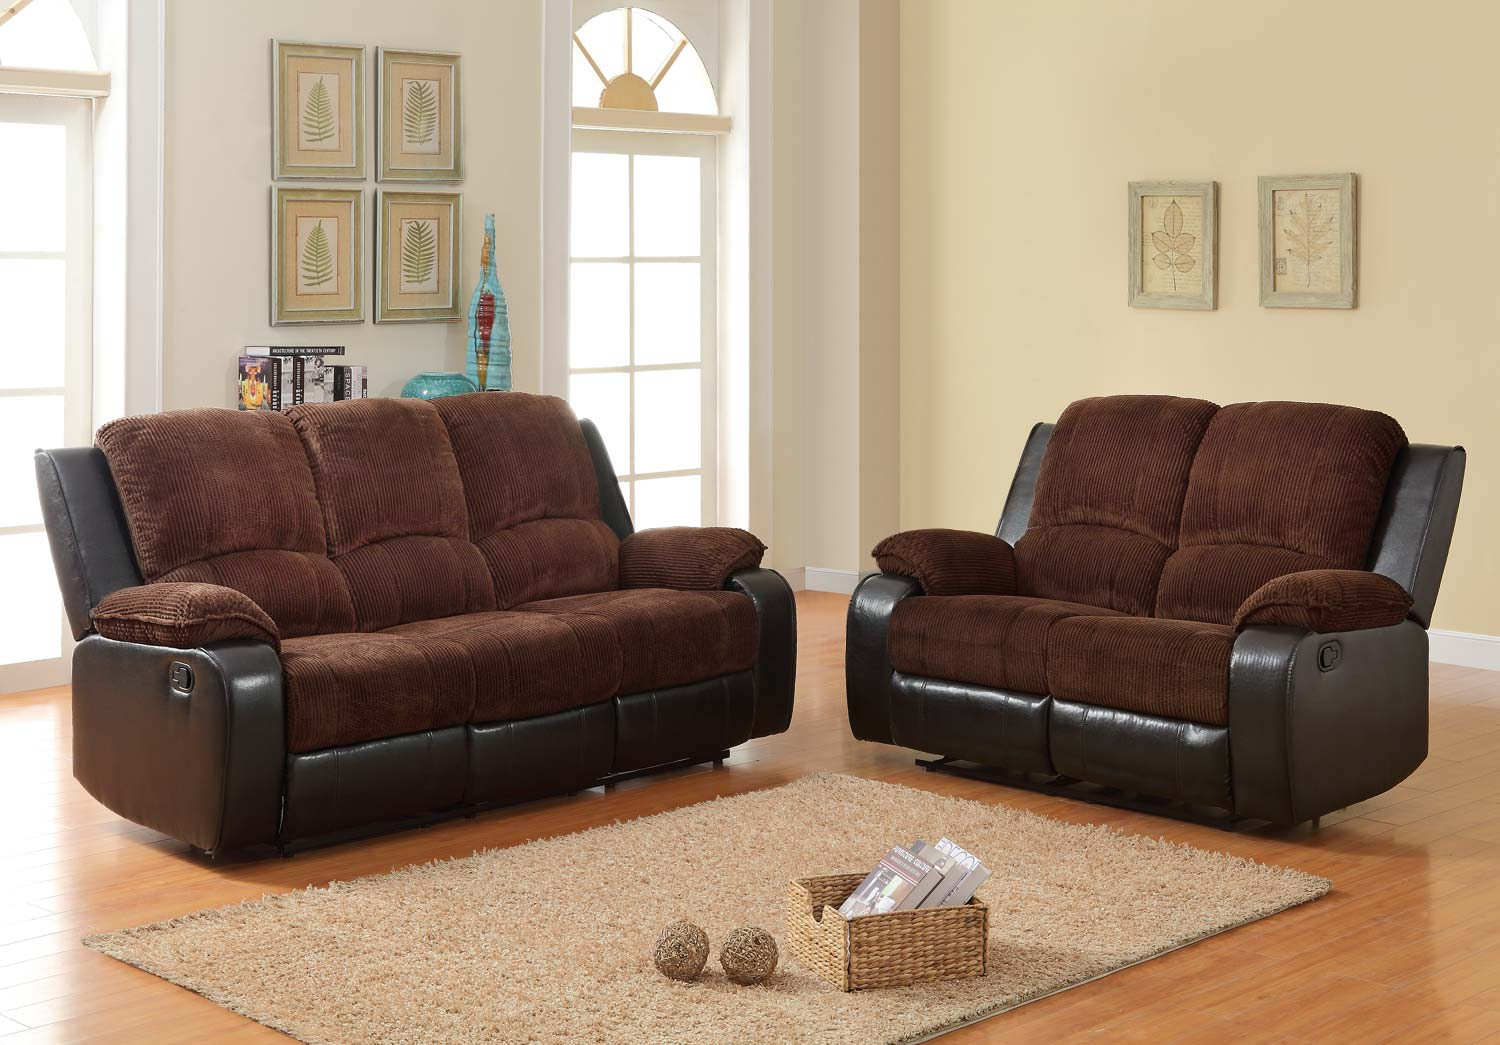 Homelegance bunker reclining sofa set chocolate for Brown corduroy couch